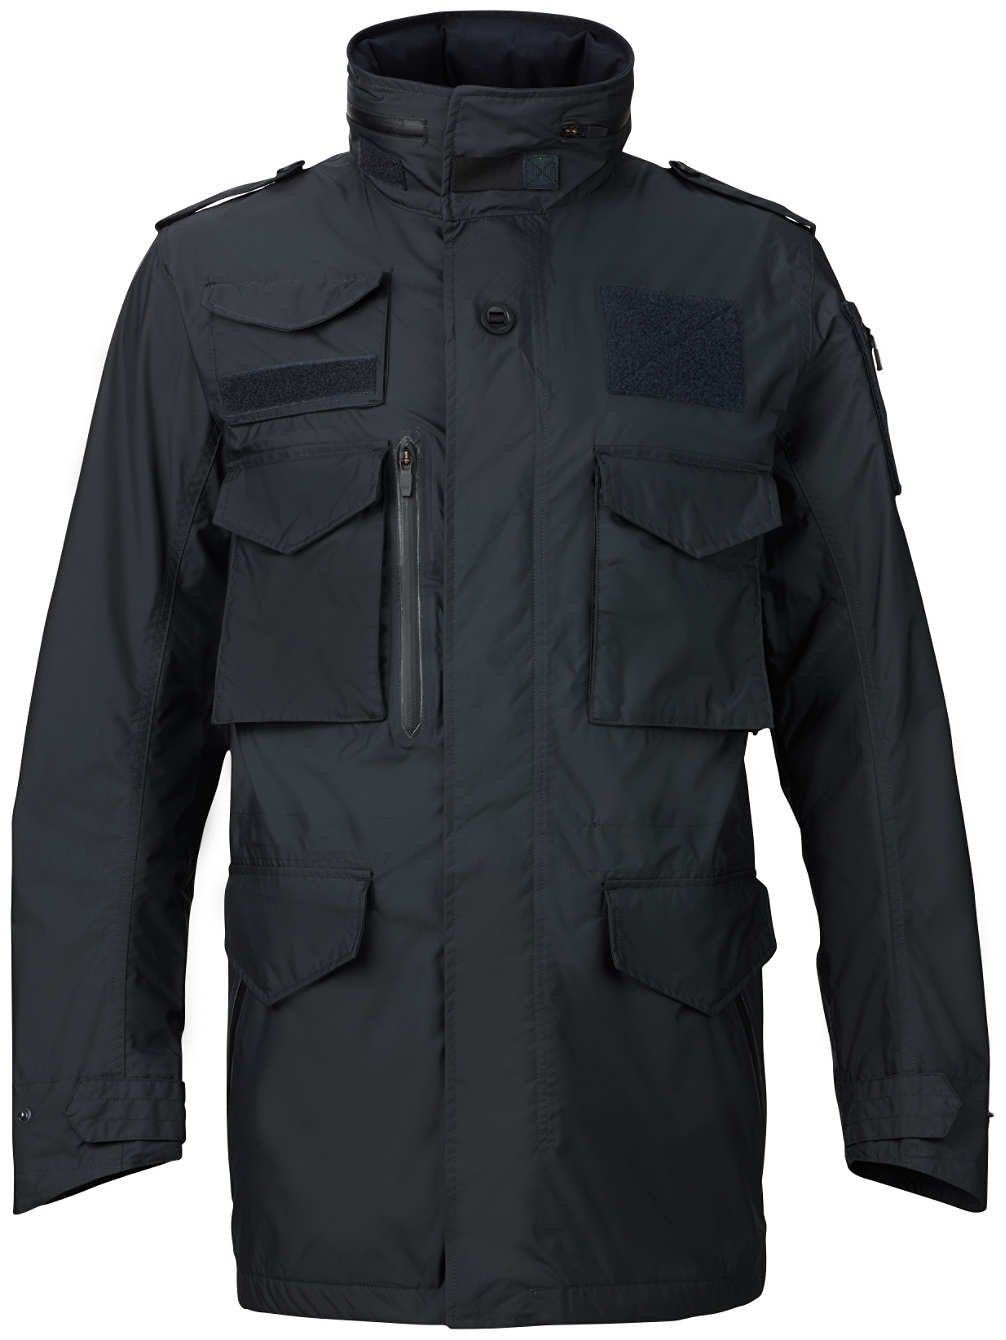 Burton x UNDEFEATED x Alpha M-65 Trench 15/16 Jacket - Black Ops